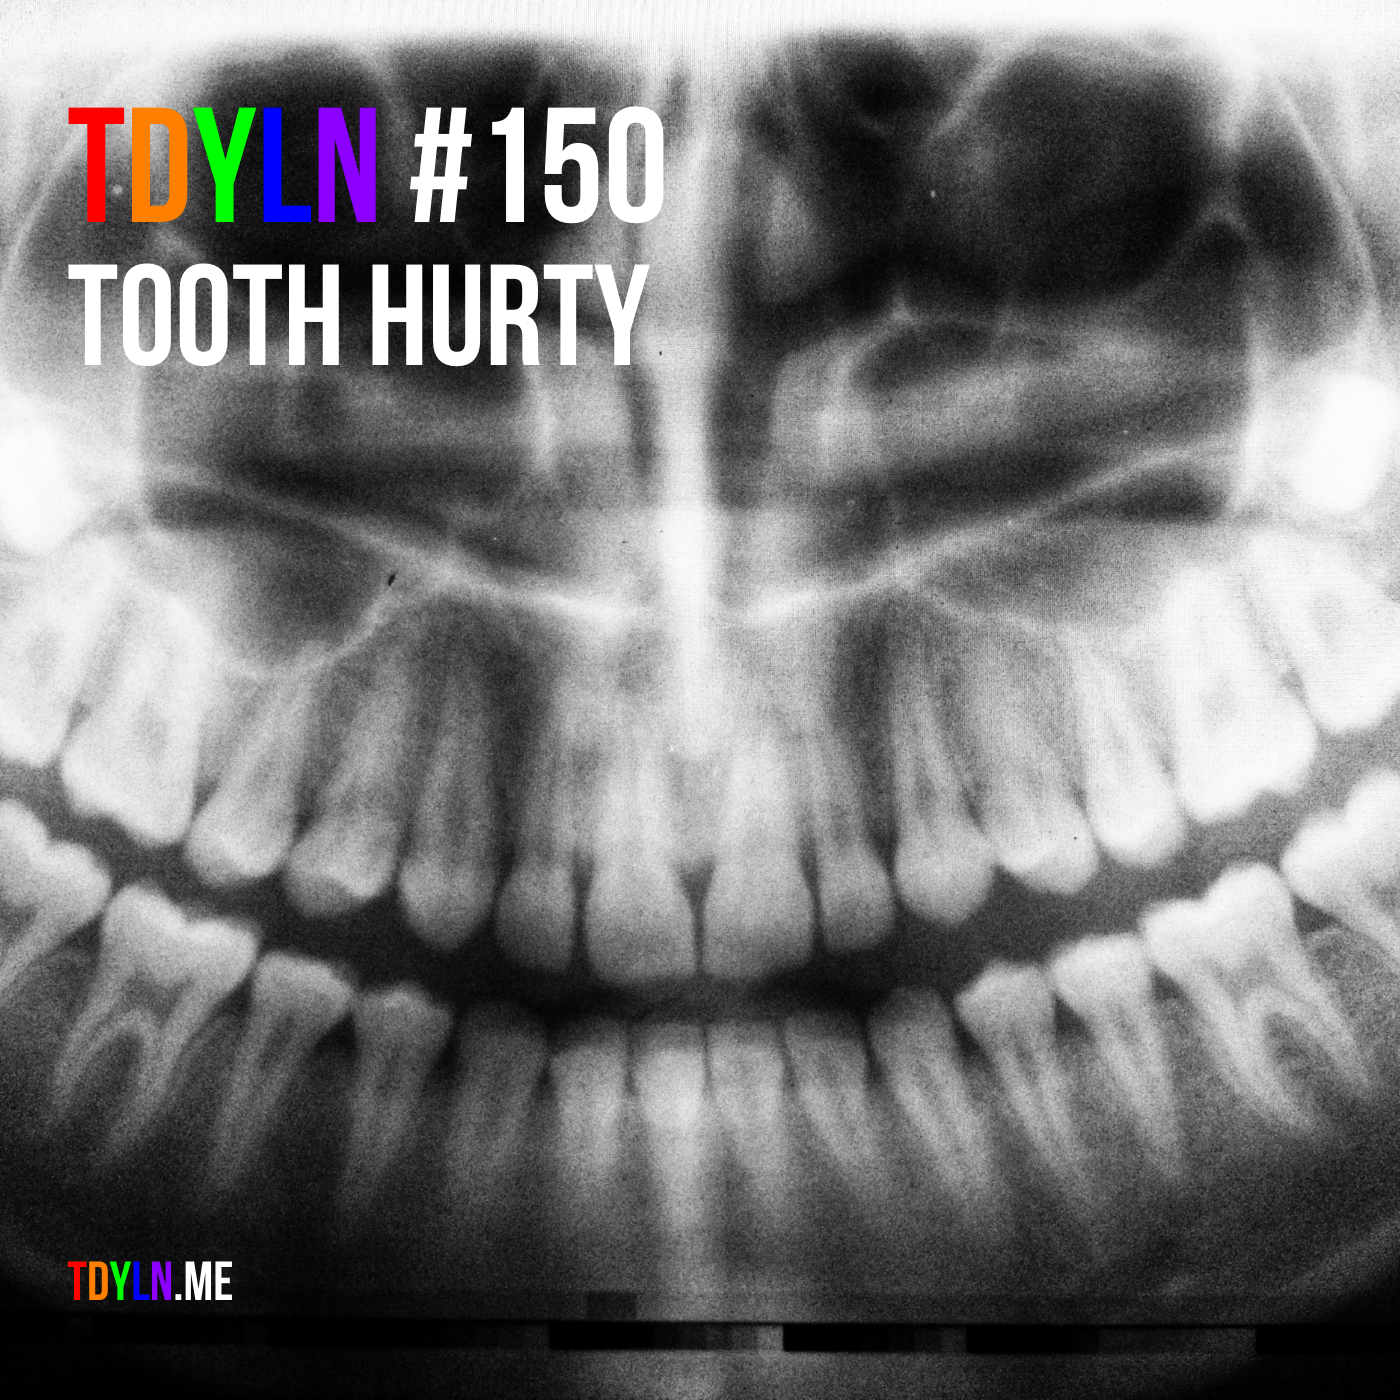 Tooth Hurty